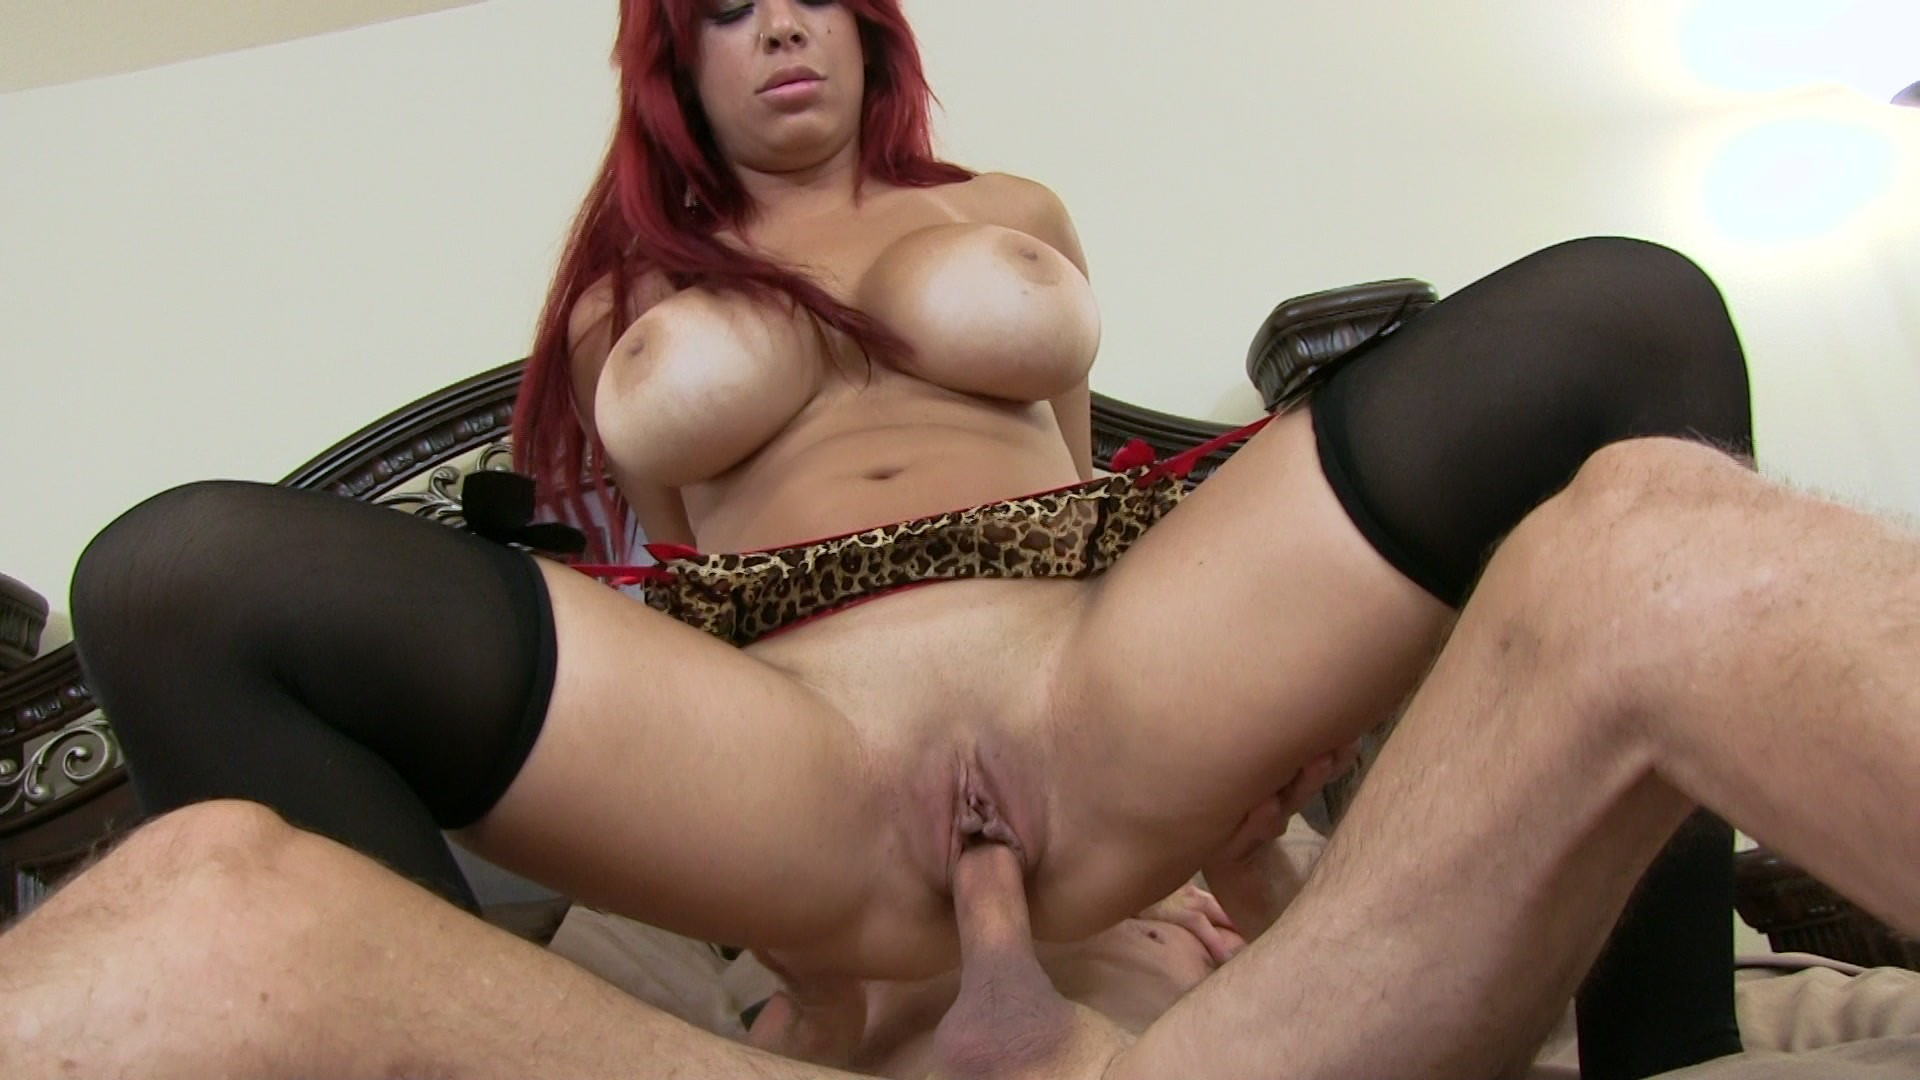 Beautiful Redhead Mom Lacy Lennon Pussy Licked And Fucked Hard By Big White Dick